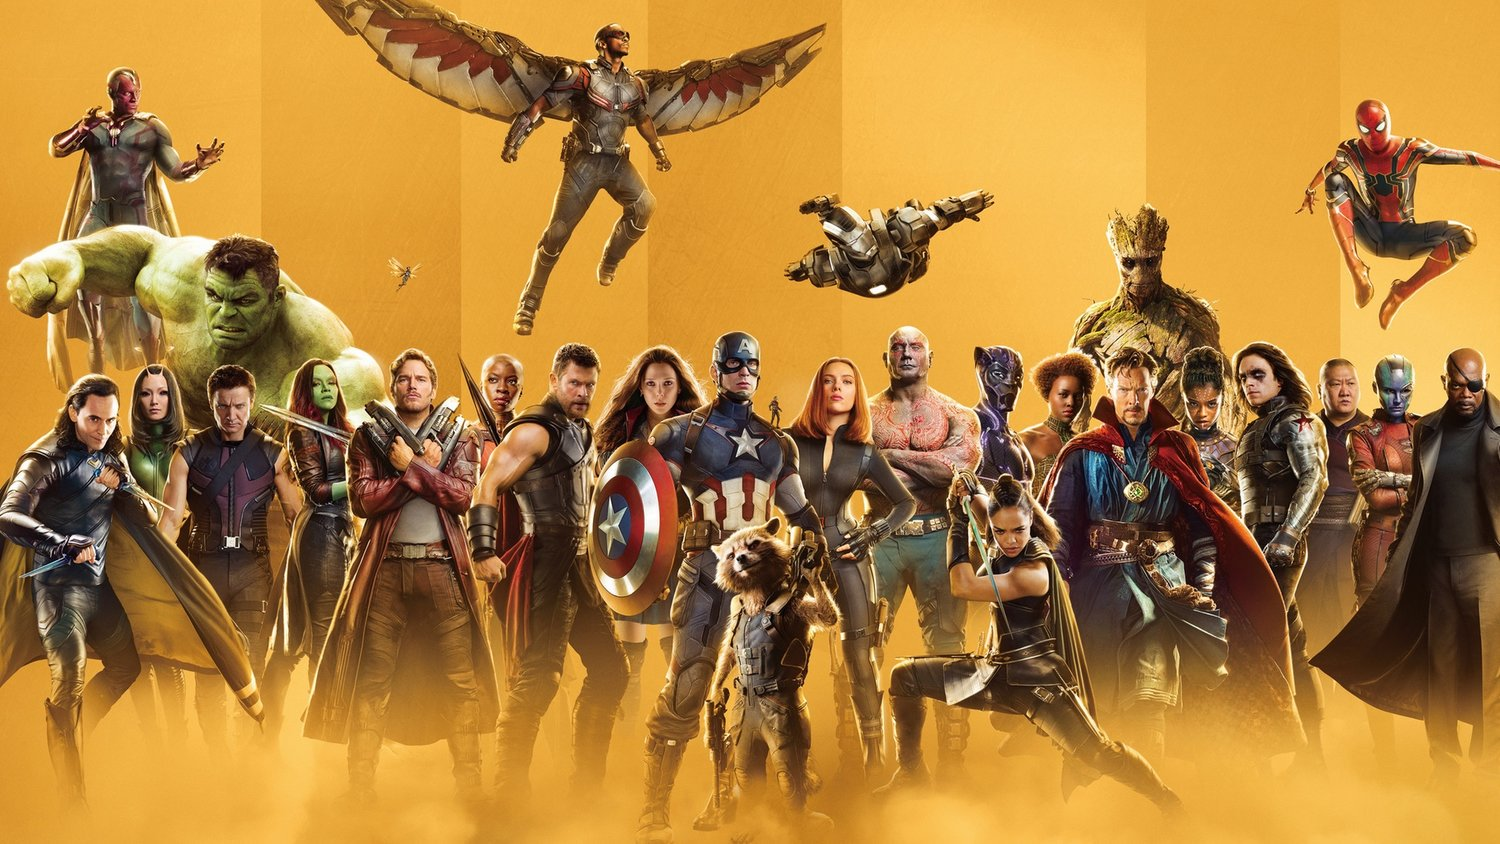 Marvel Cinematic Universe (MCU) celebrates 10th anniversary by releasing a series of 33 posters.